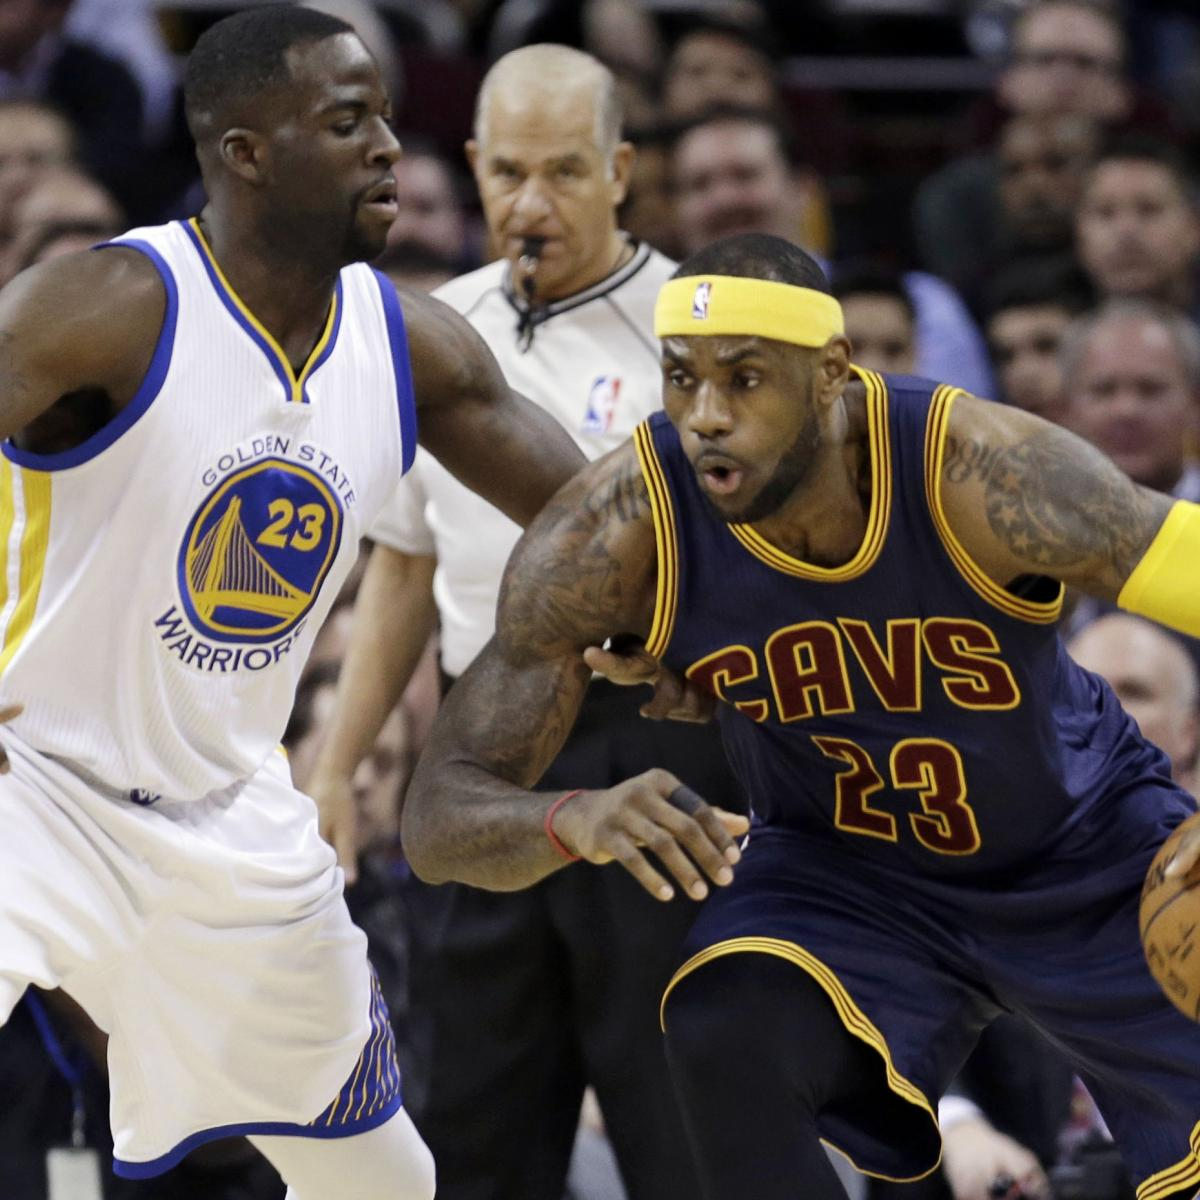 NBA Finals Schedule 2015: TV Times, Live Stream Coverage